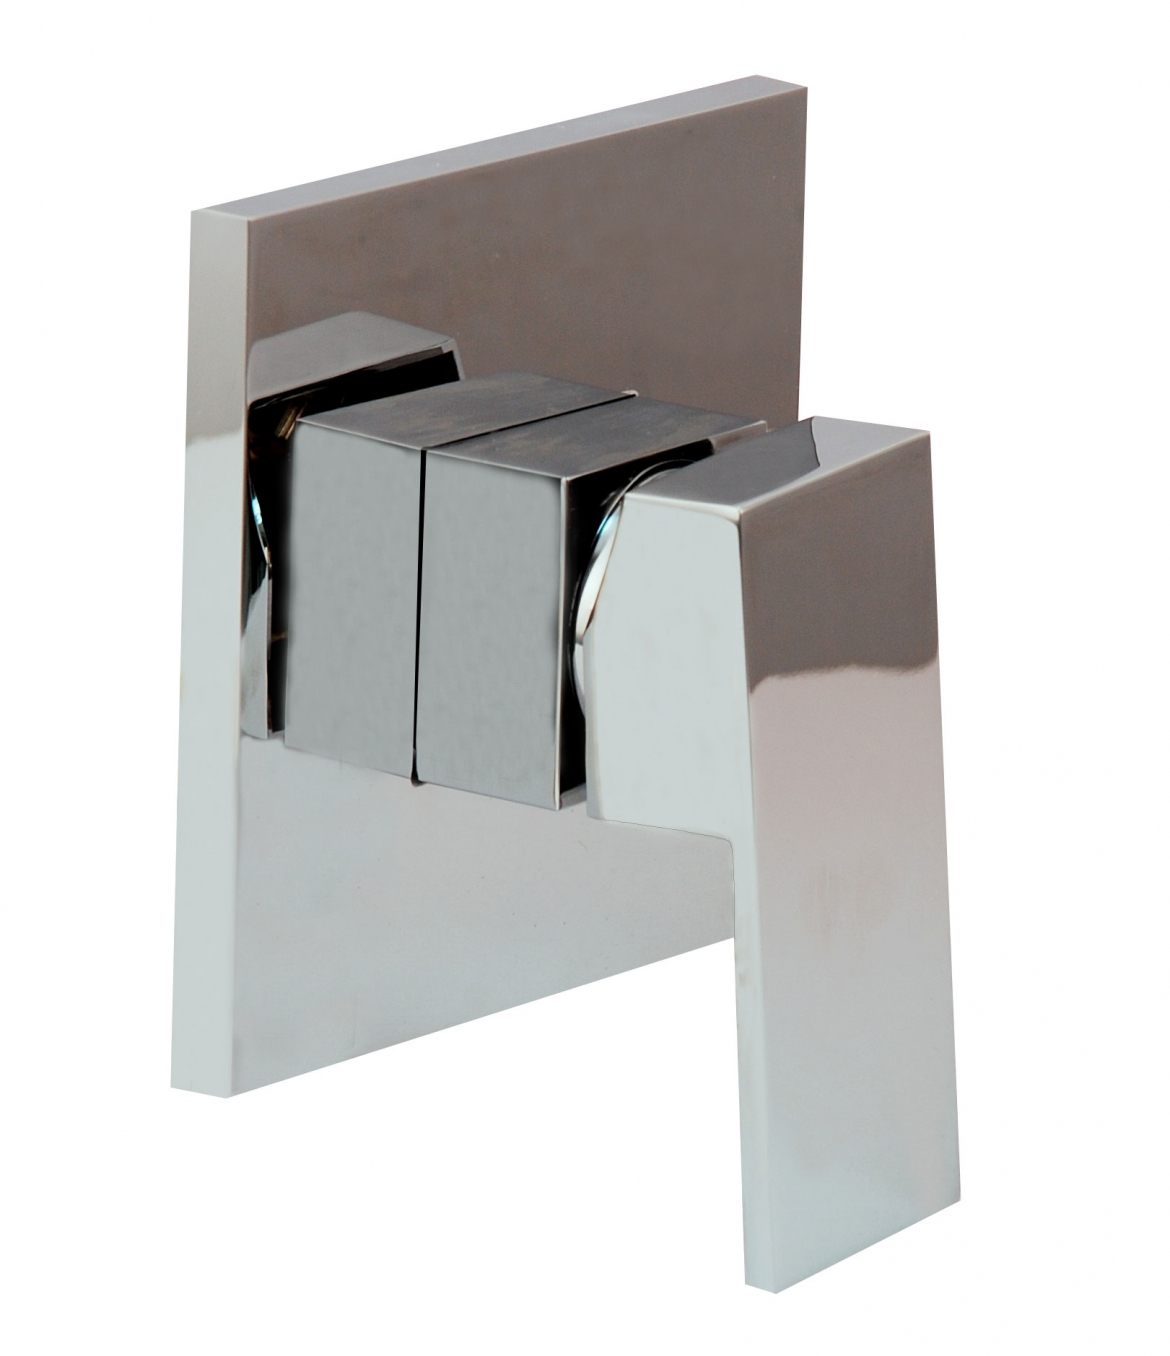 Square Shower wall mixer